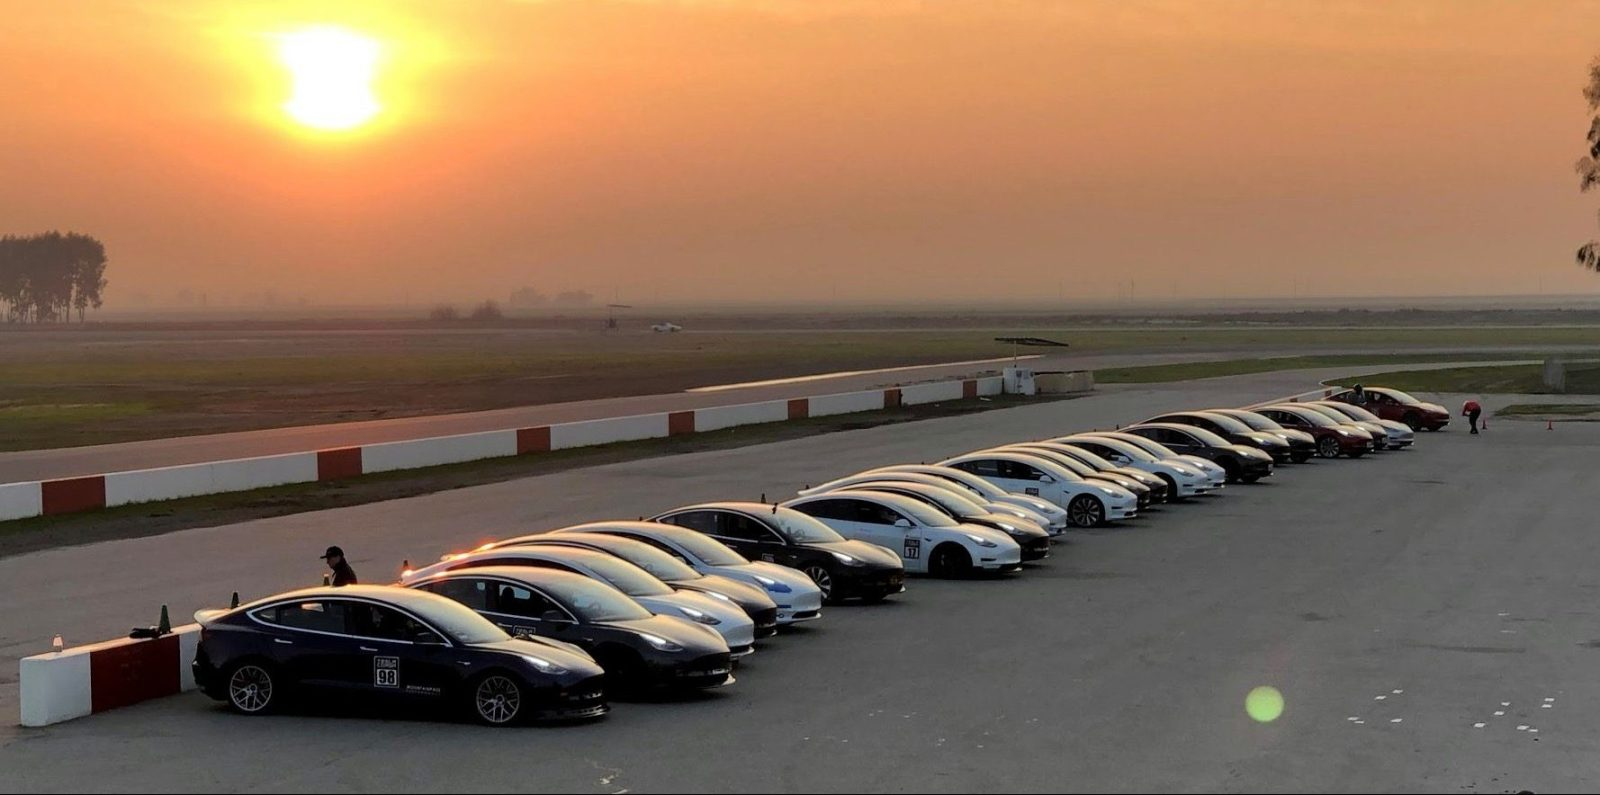 Tesla Makes Deal With Fiat Chrysler To Pool Fleet For Eu Emission Requirement